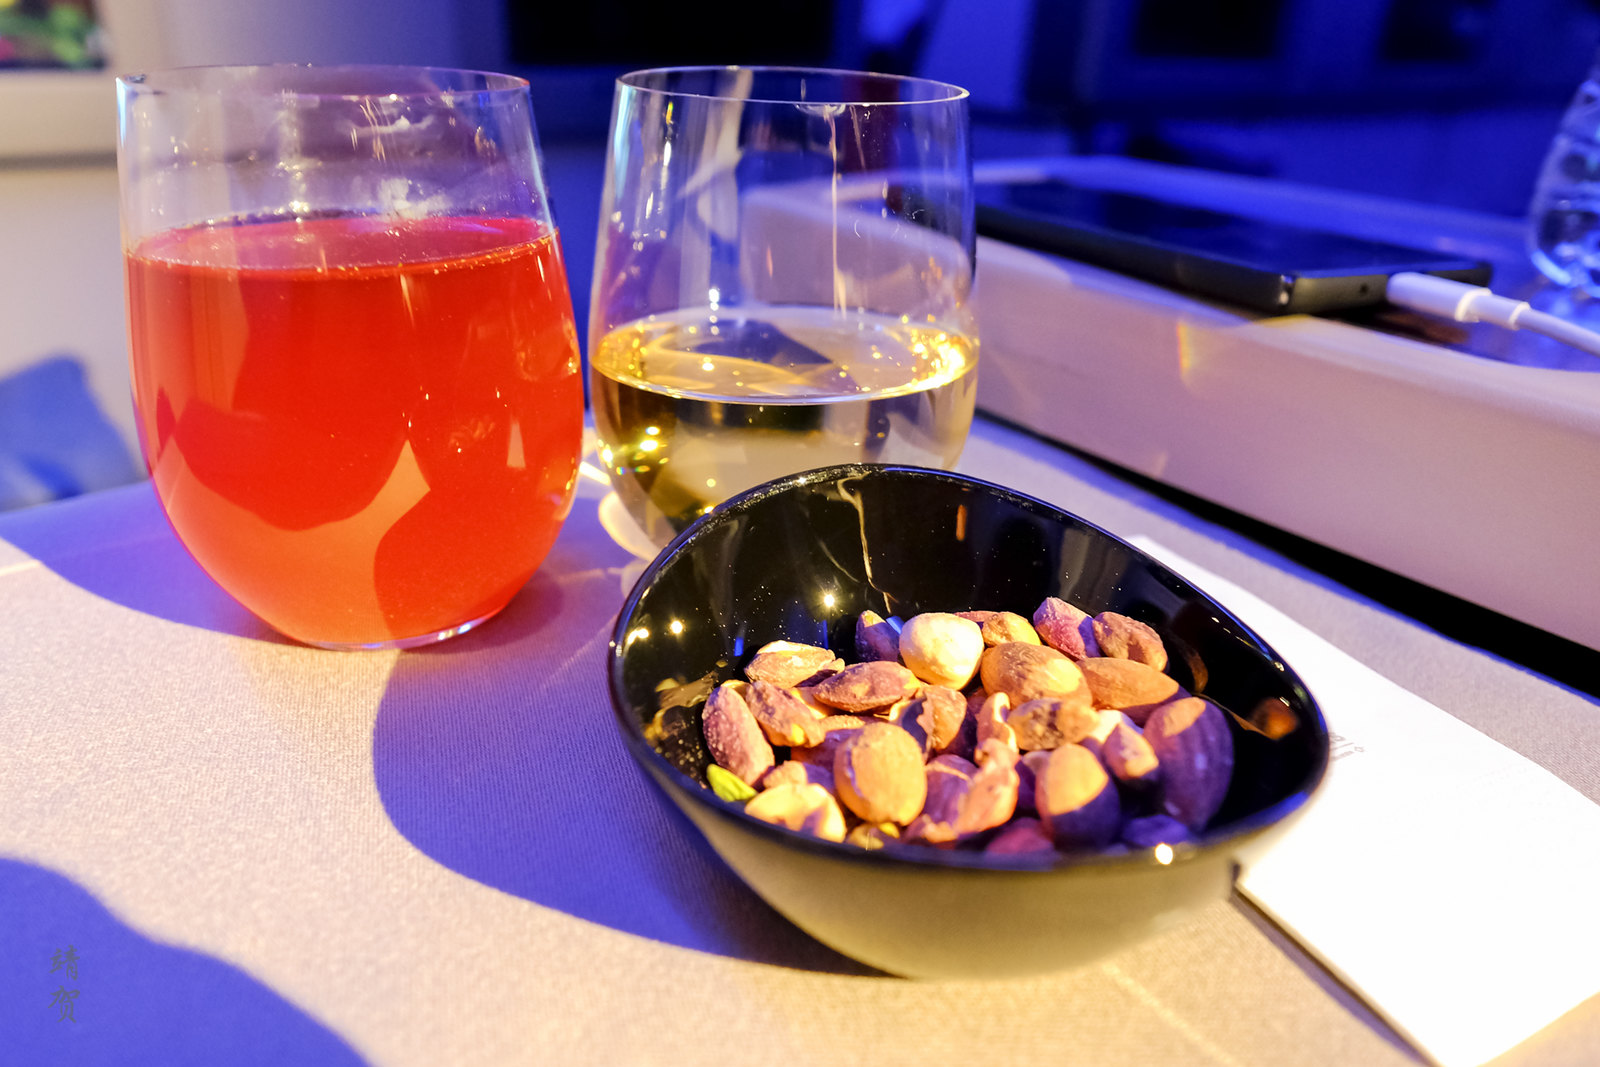 Nuts with white wine and cold tea